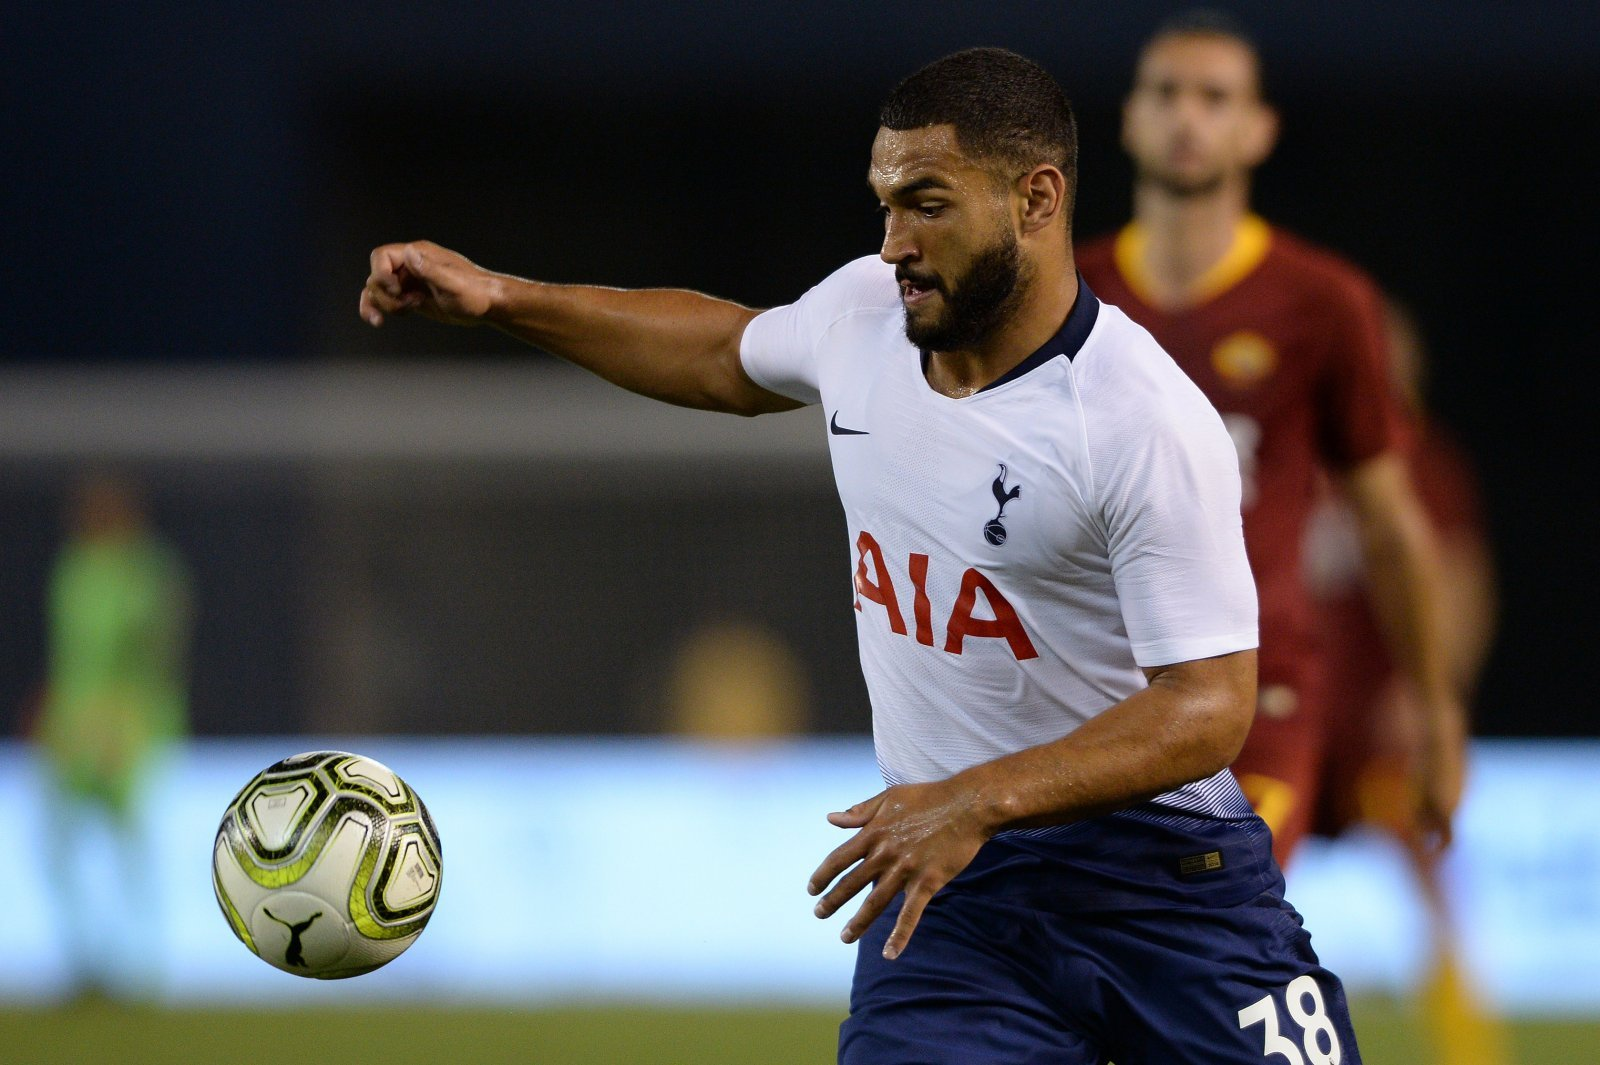 Sheffield Wednesday simply must beat Swansea to Cameron Carter-Vickers' signature